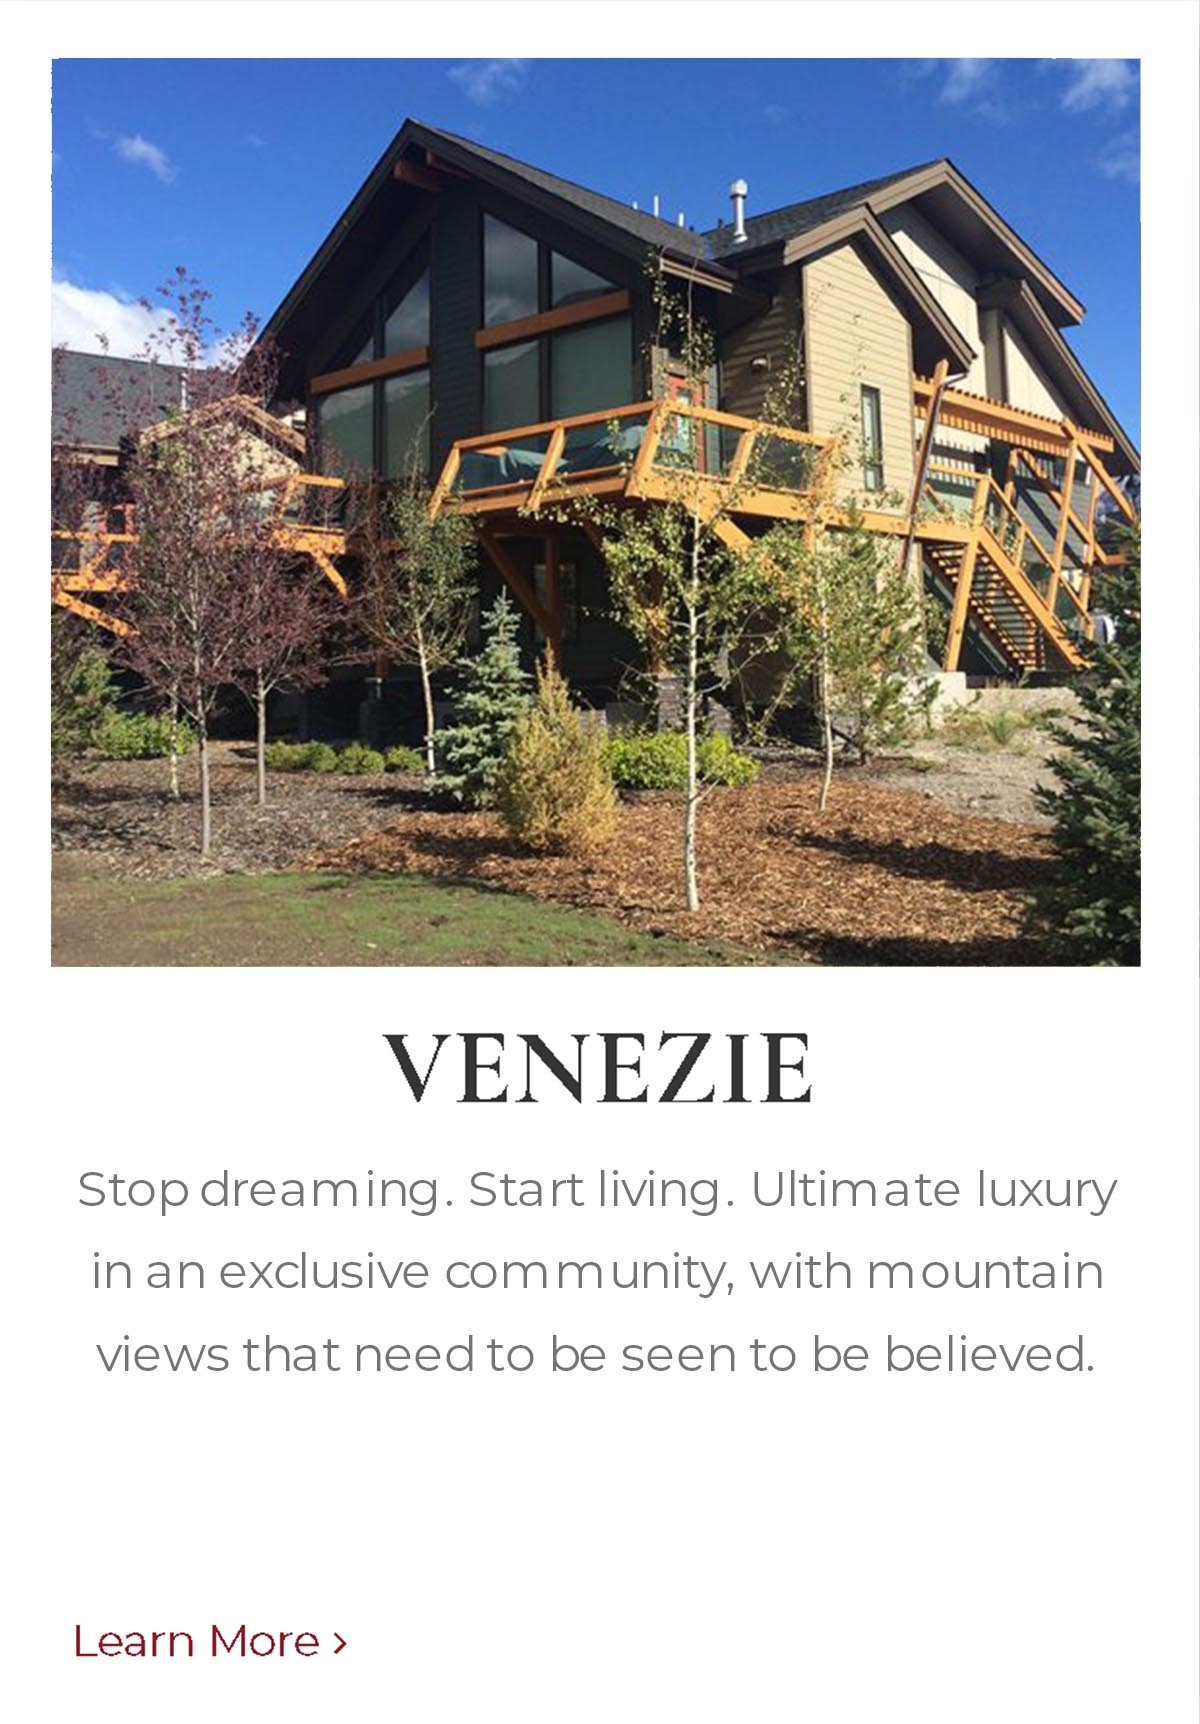 Venezie private community mountain home built by Distinctive Homes